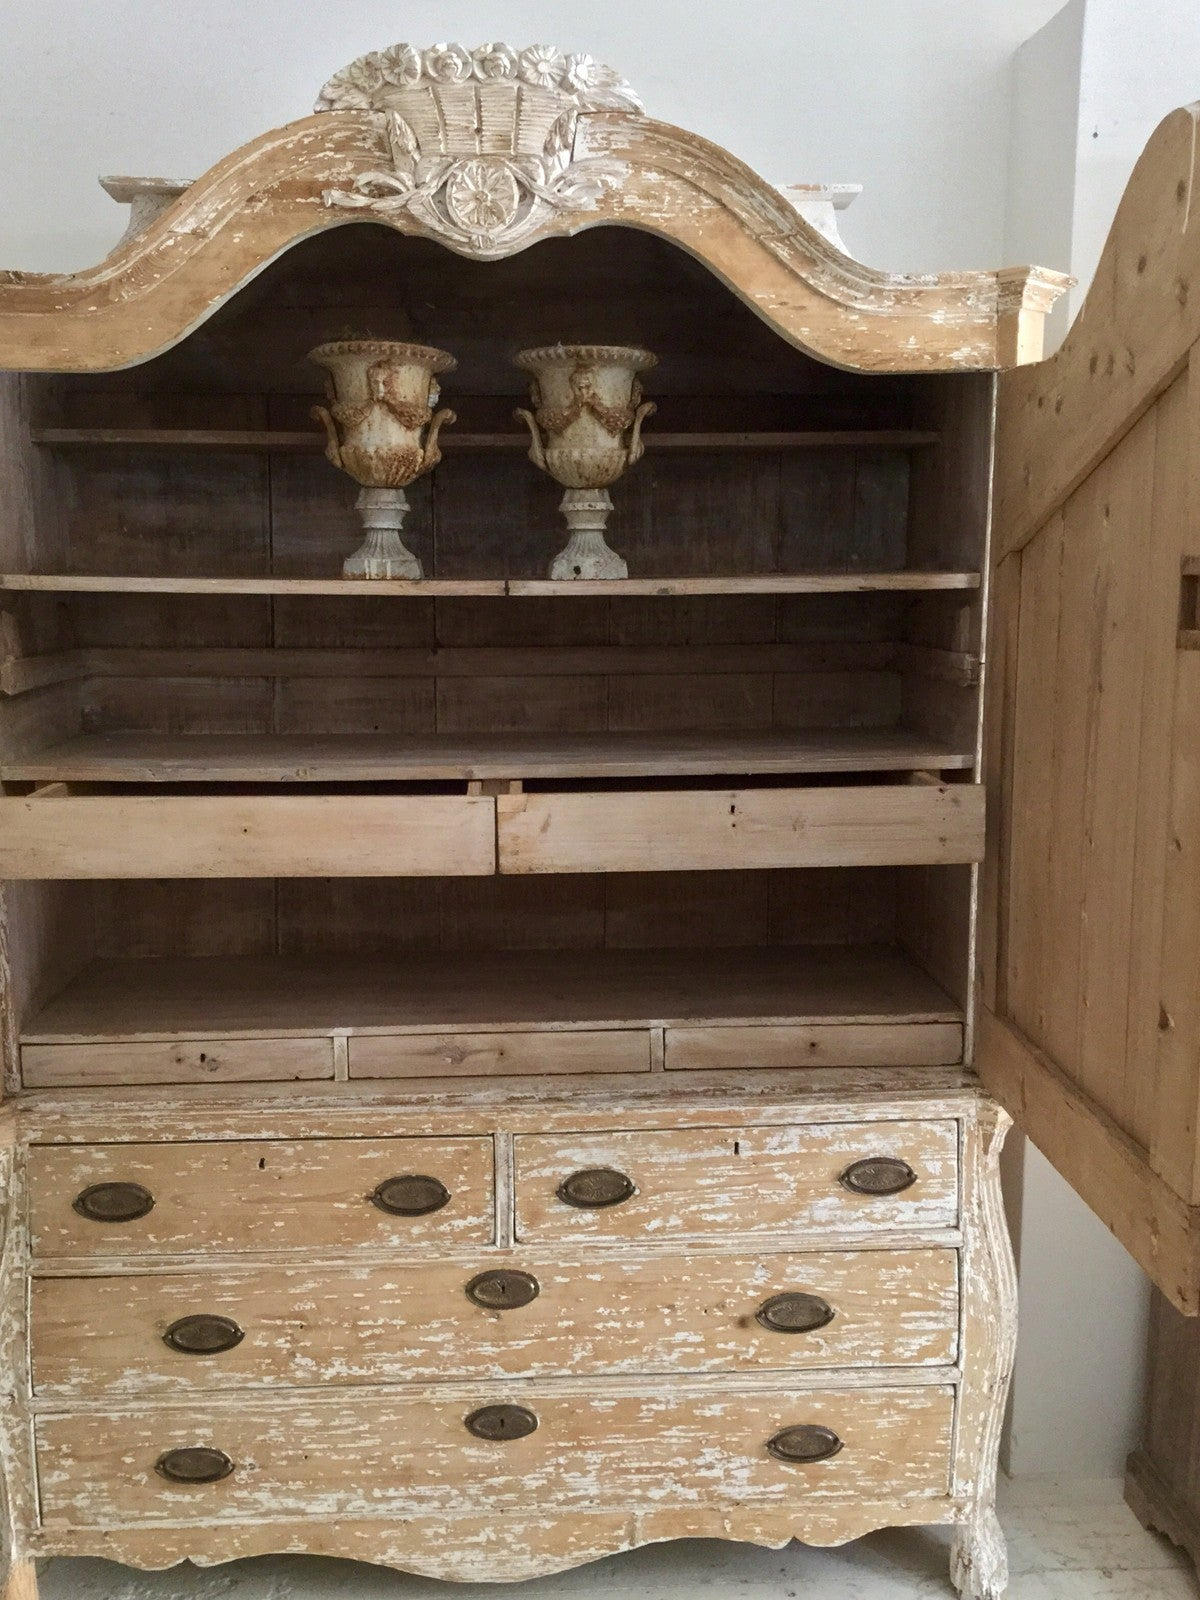 19th century french rococo style buffet deux corps at 1stdibs for French rococo period